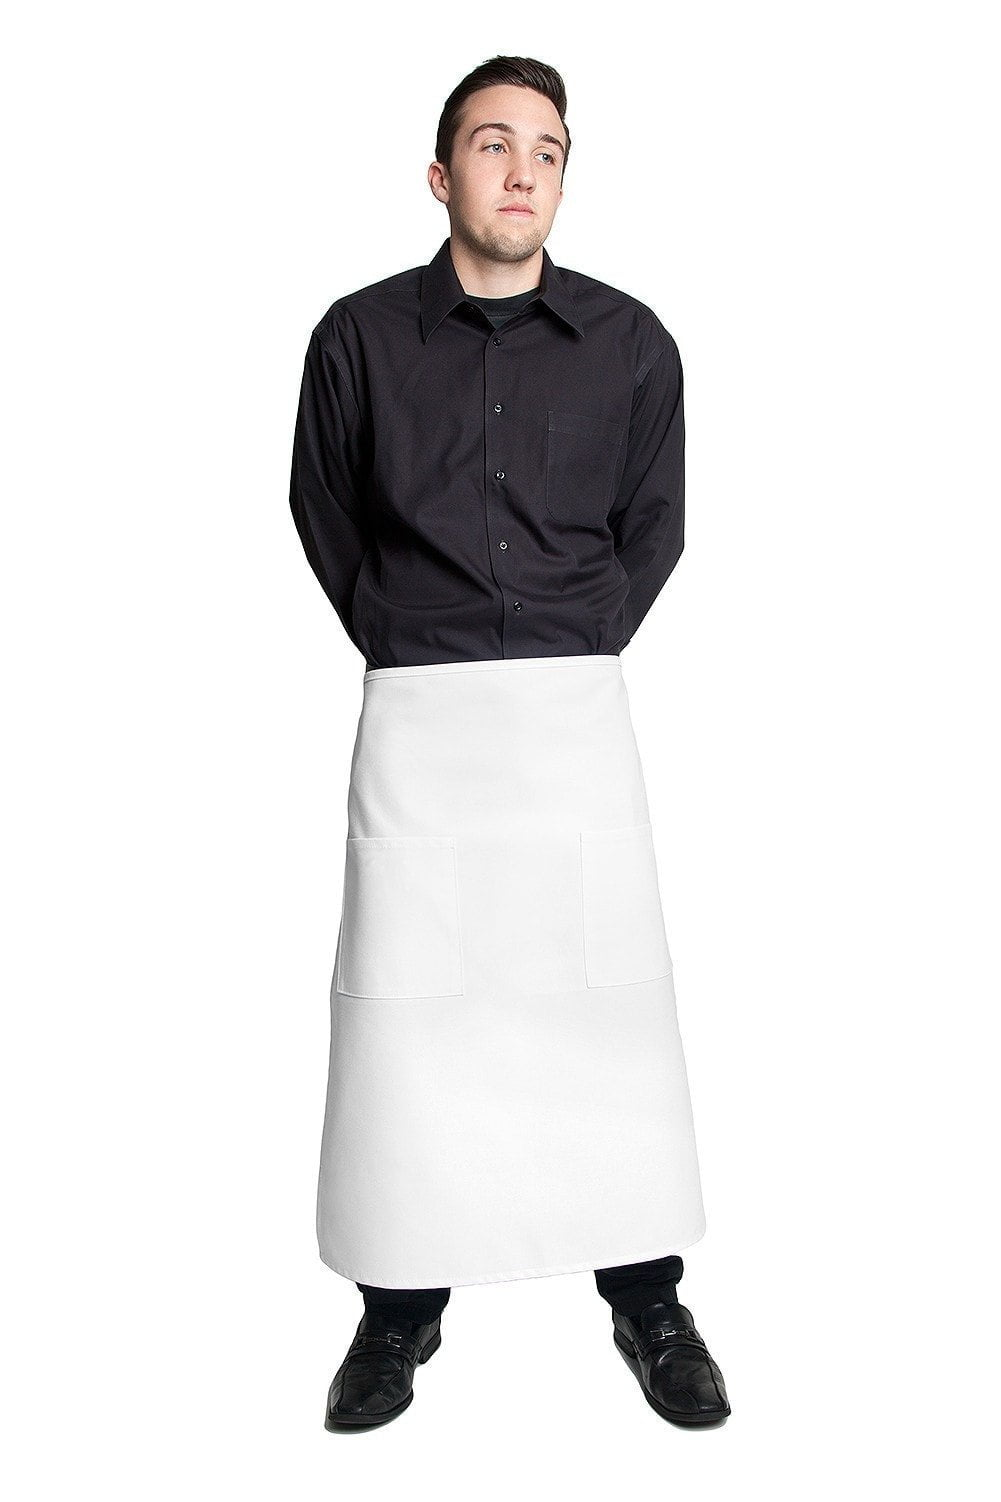 White bistro apron -  Full Bistro Apron With 2 Patch Pockets 32 L X 28 W White Front